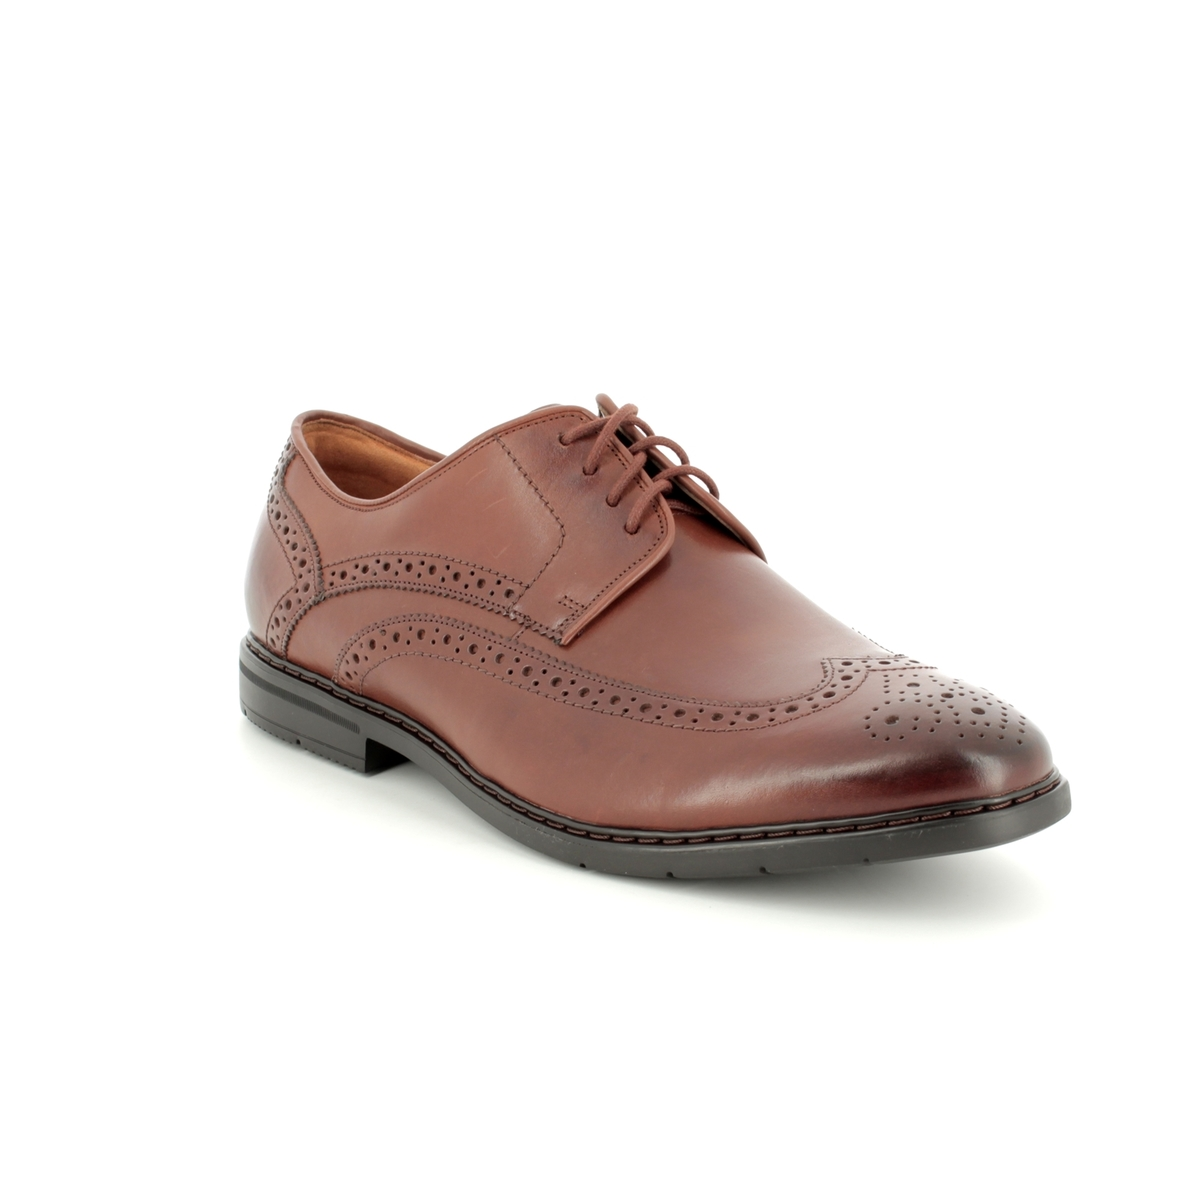 Clarks Formal Shoes - Tan - 3224/37G BANBURY LIMIT